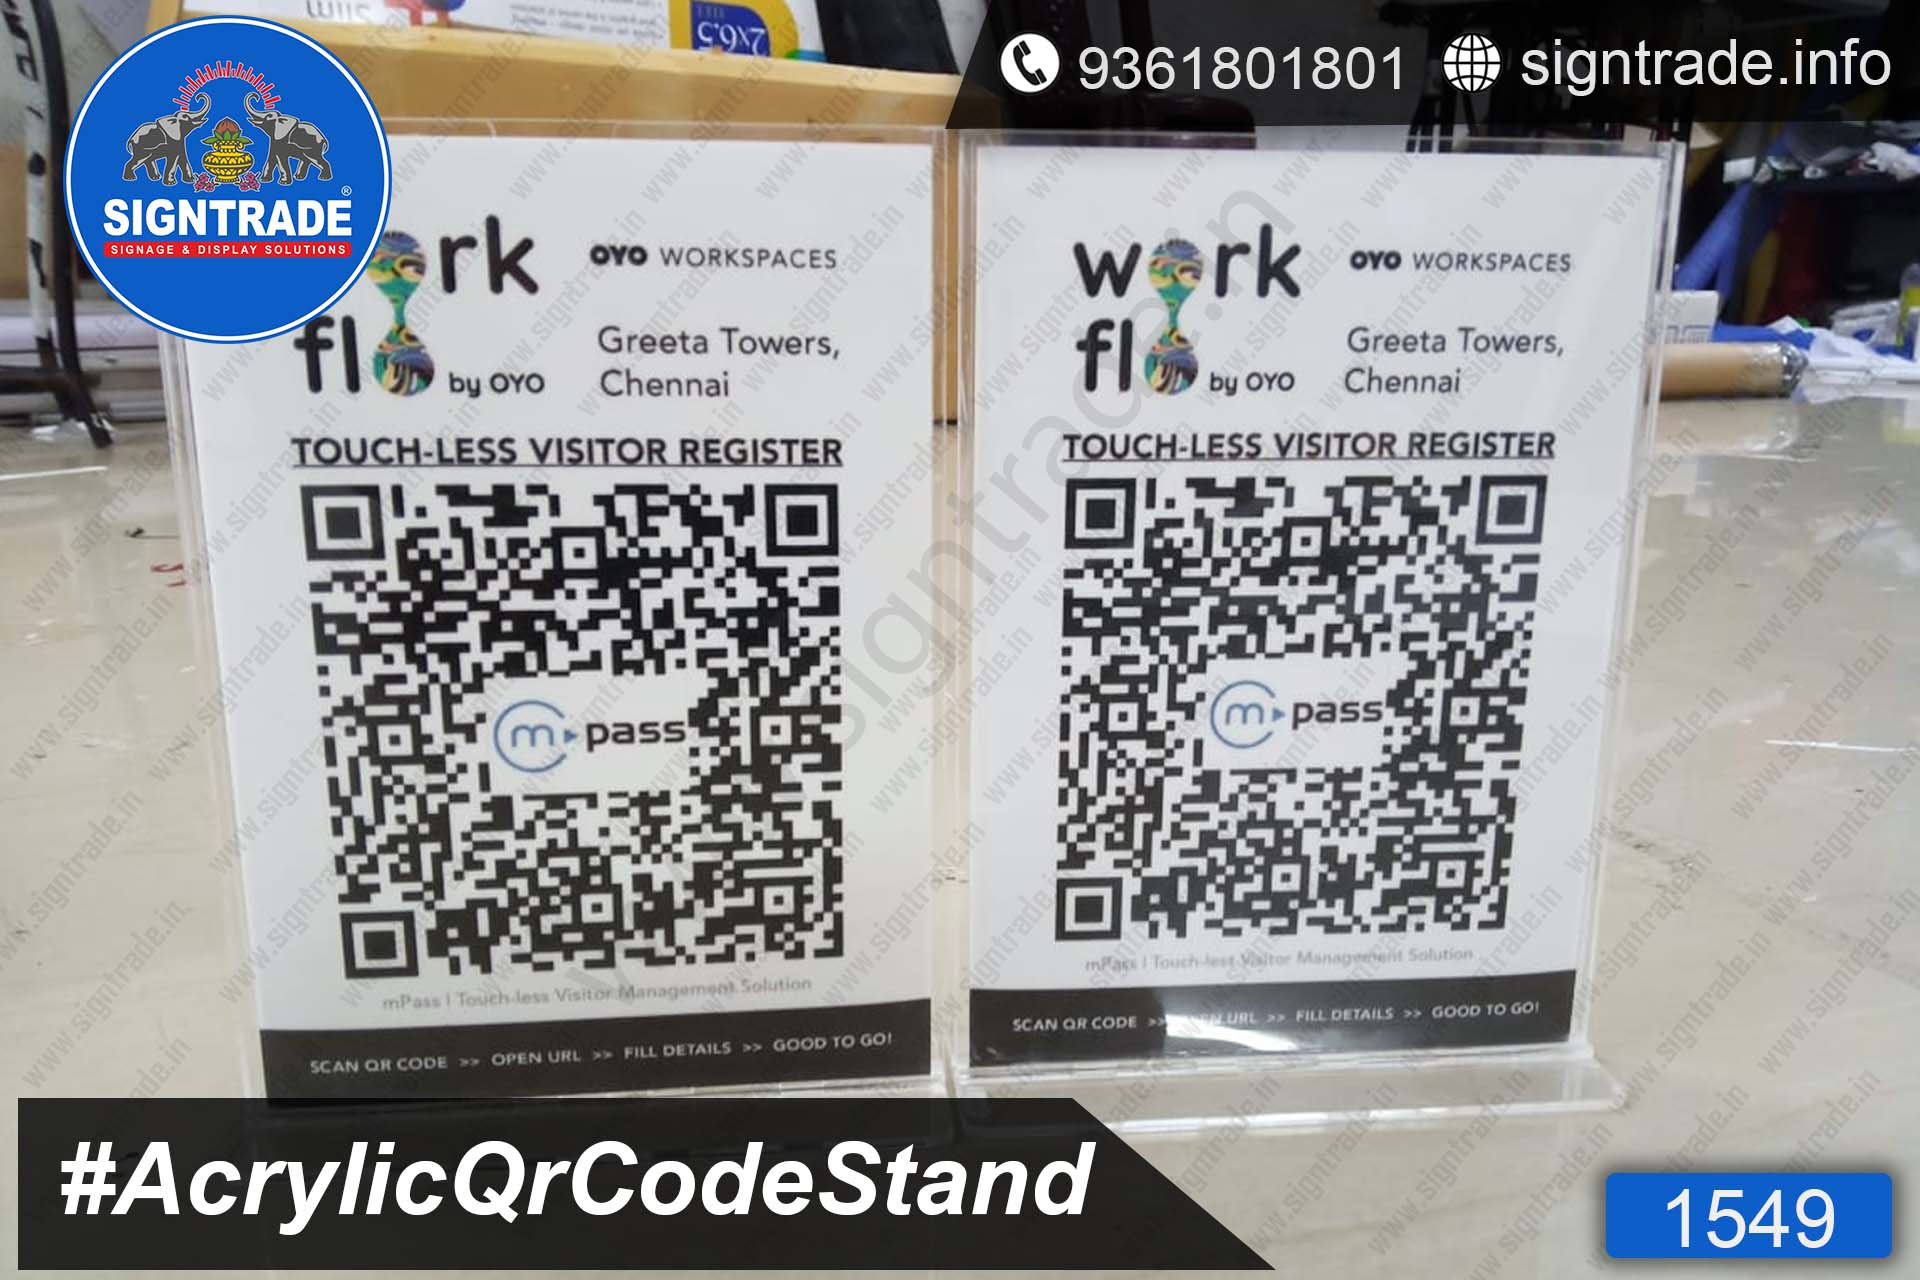 Clear Acrylic QR Code Stand, Table top QR Code Scanner Stand Wholesaler, Retailer and Manufacturer in Chennai